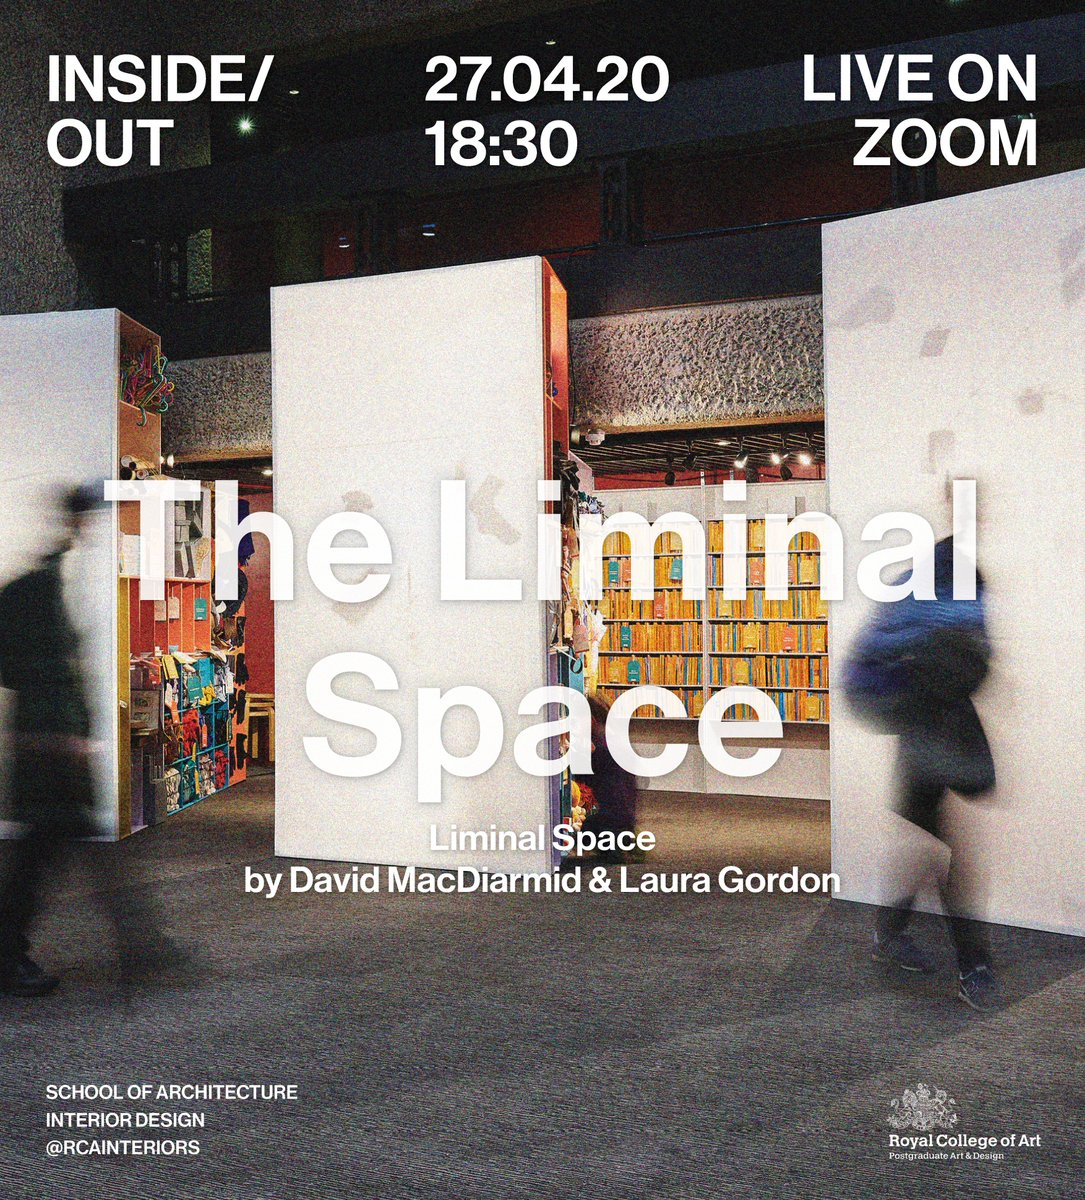 Our next Inside/Out Lecture Series is coming up! Inside/Out Lecture Series: The Liminal Space Monday 27th April 2020 at 6.30pm (GMT). @TheLiminalSpace will be live streamed on Zoom. Reserve your seat at: https://t.co/j9pPWwl6Xw https://t.co/v05nfO6iJW